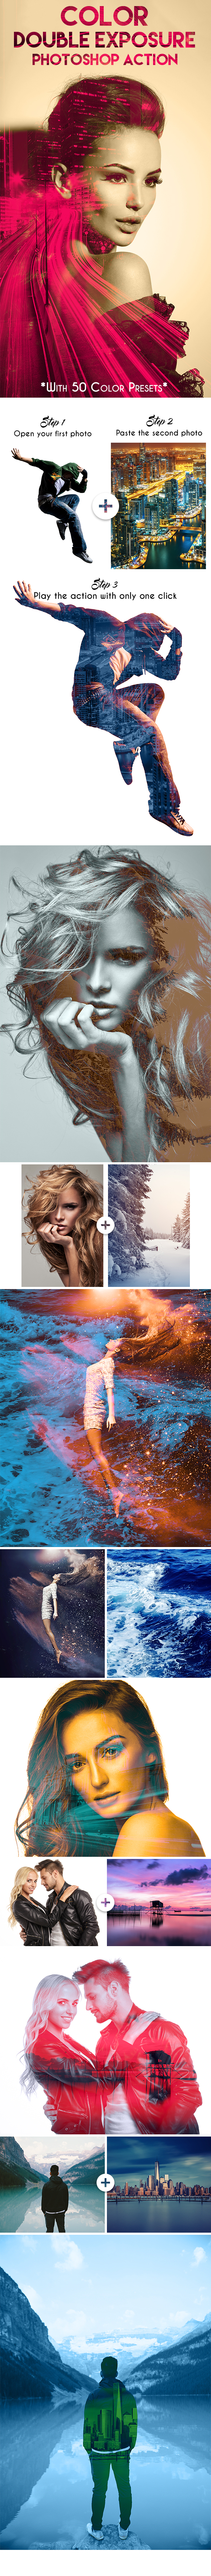 Color Double Exposure Photoshop Action - Photo Effects Actions